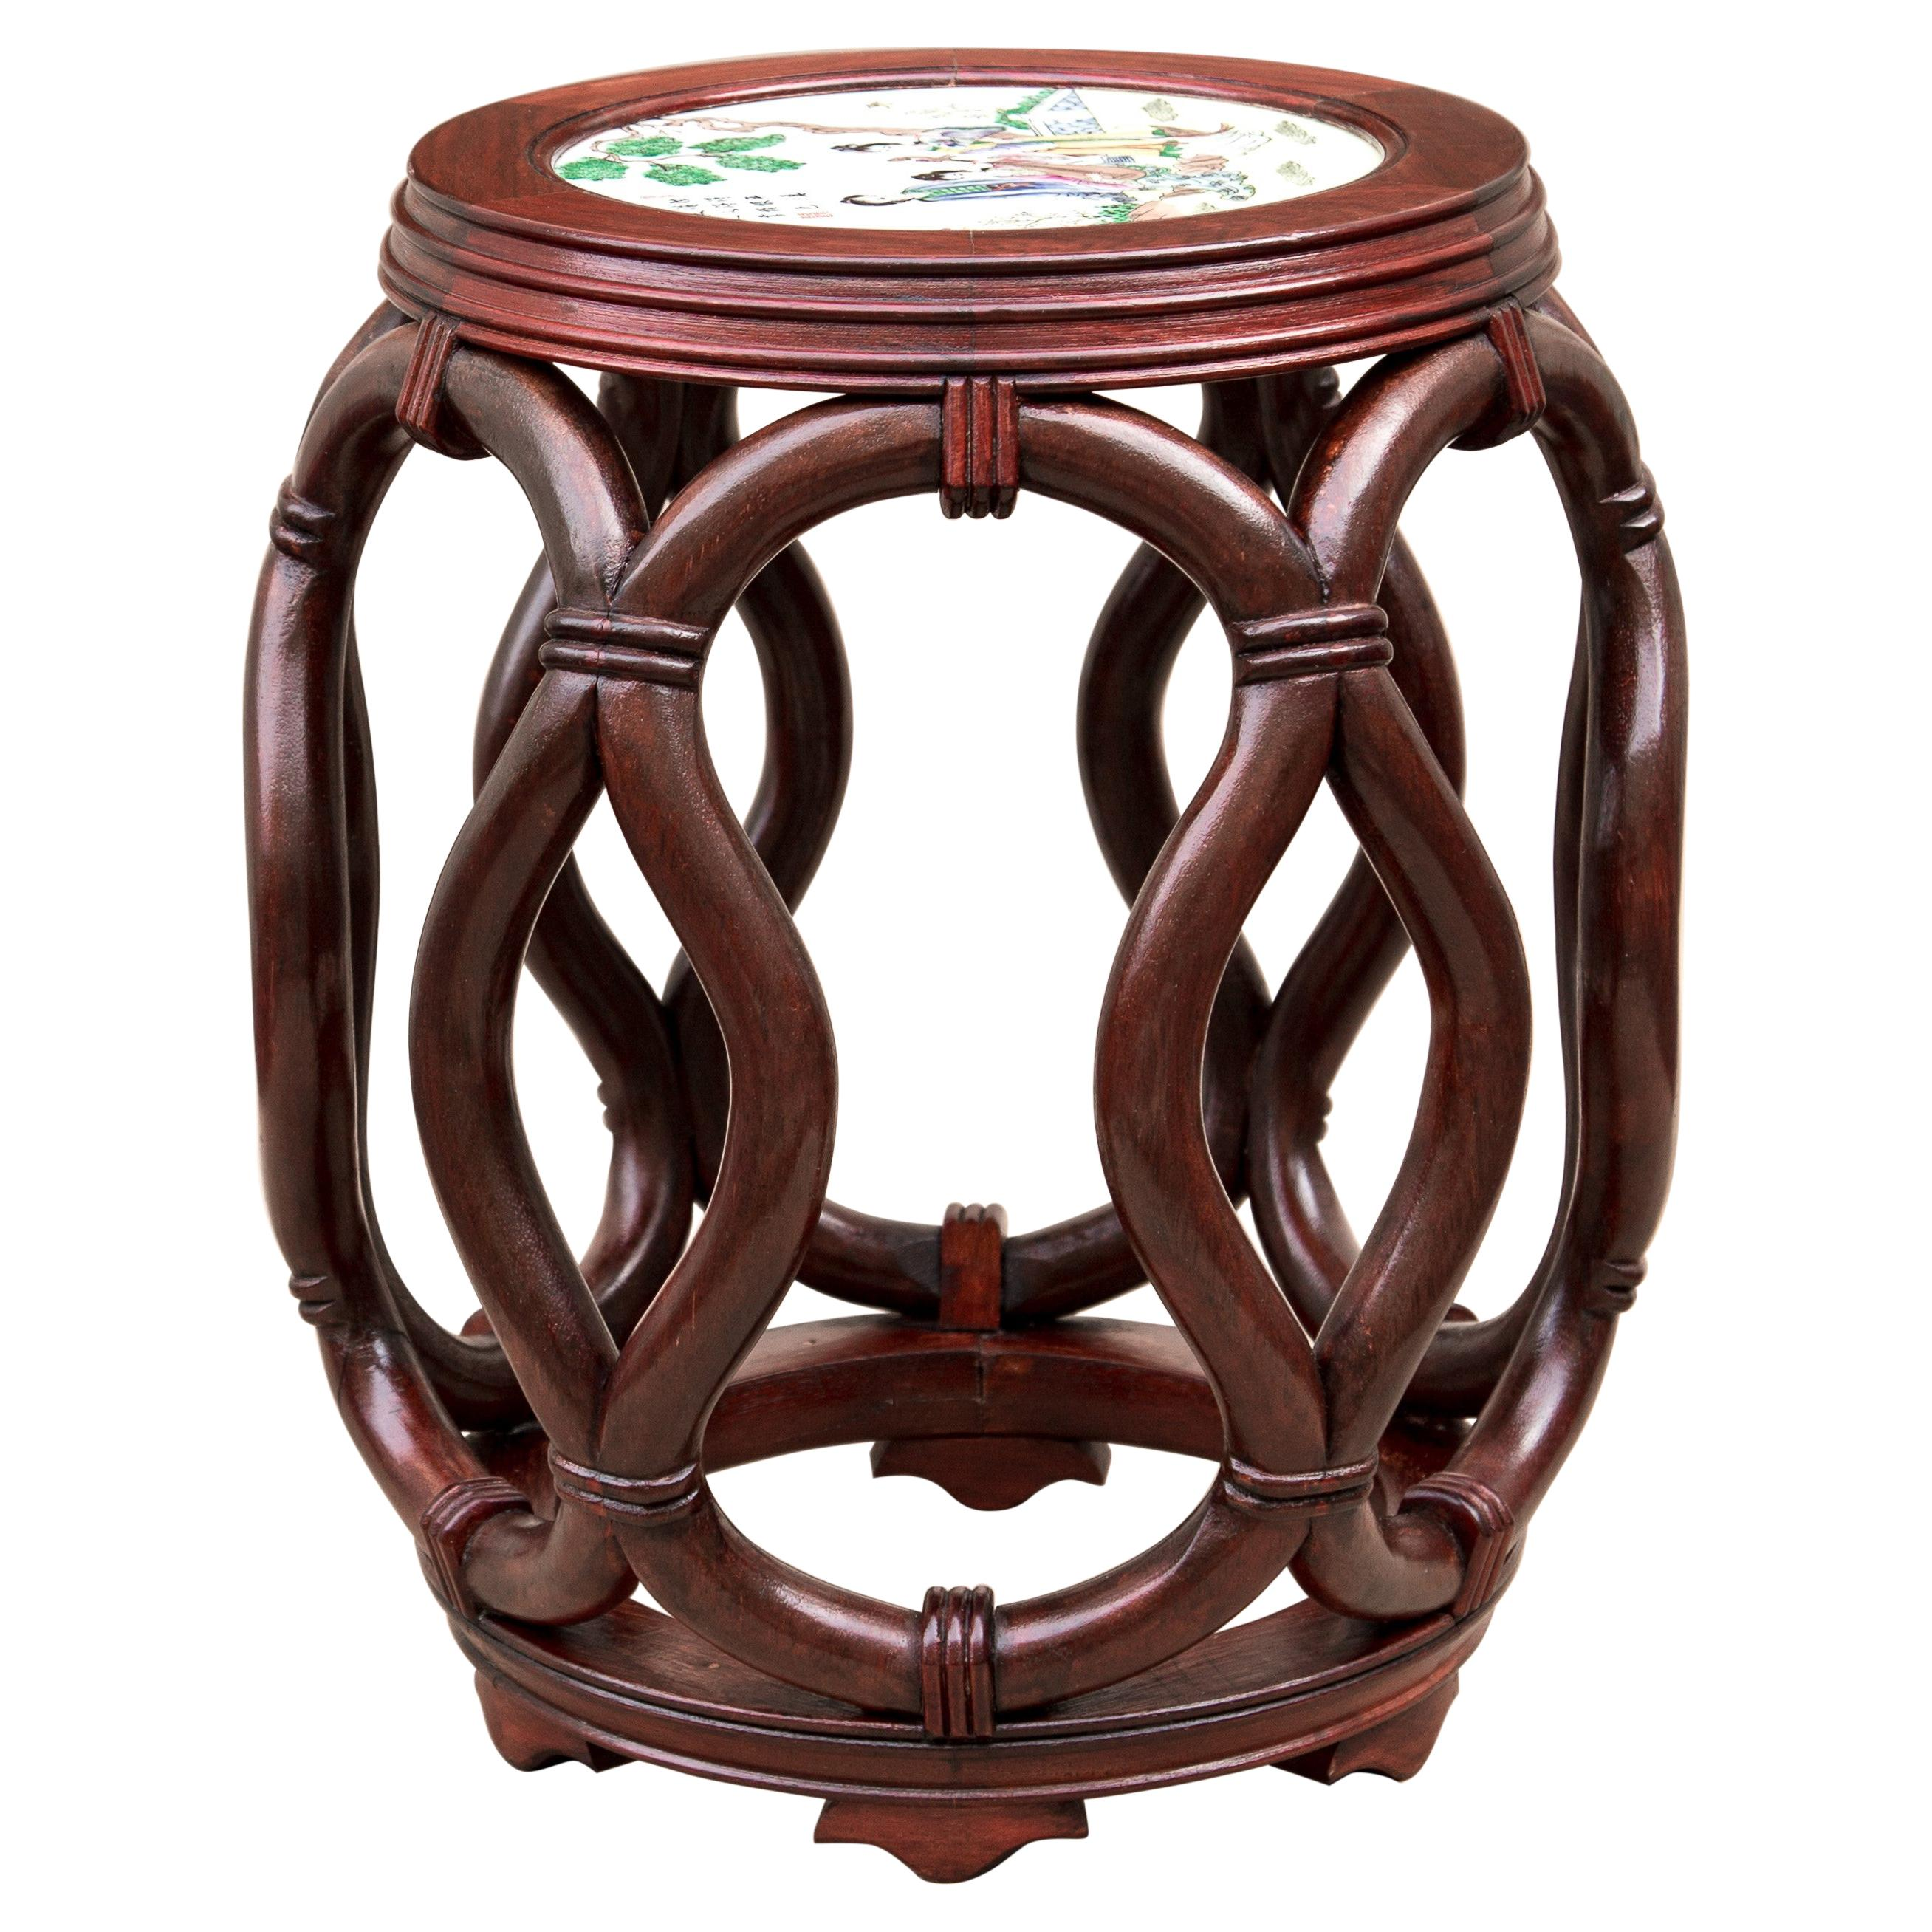 Asian Bentwood Drum Stool or Side Table with White Porcelain Top